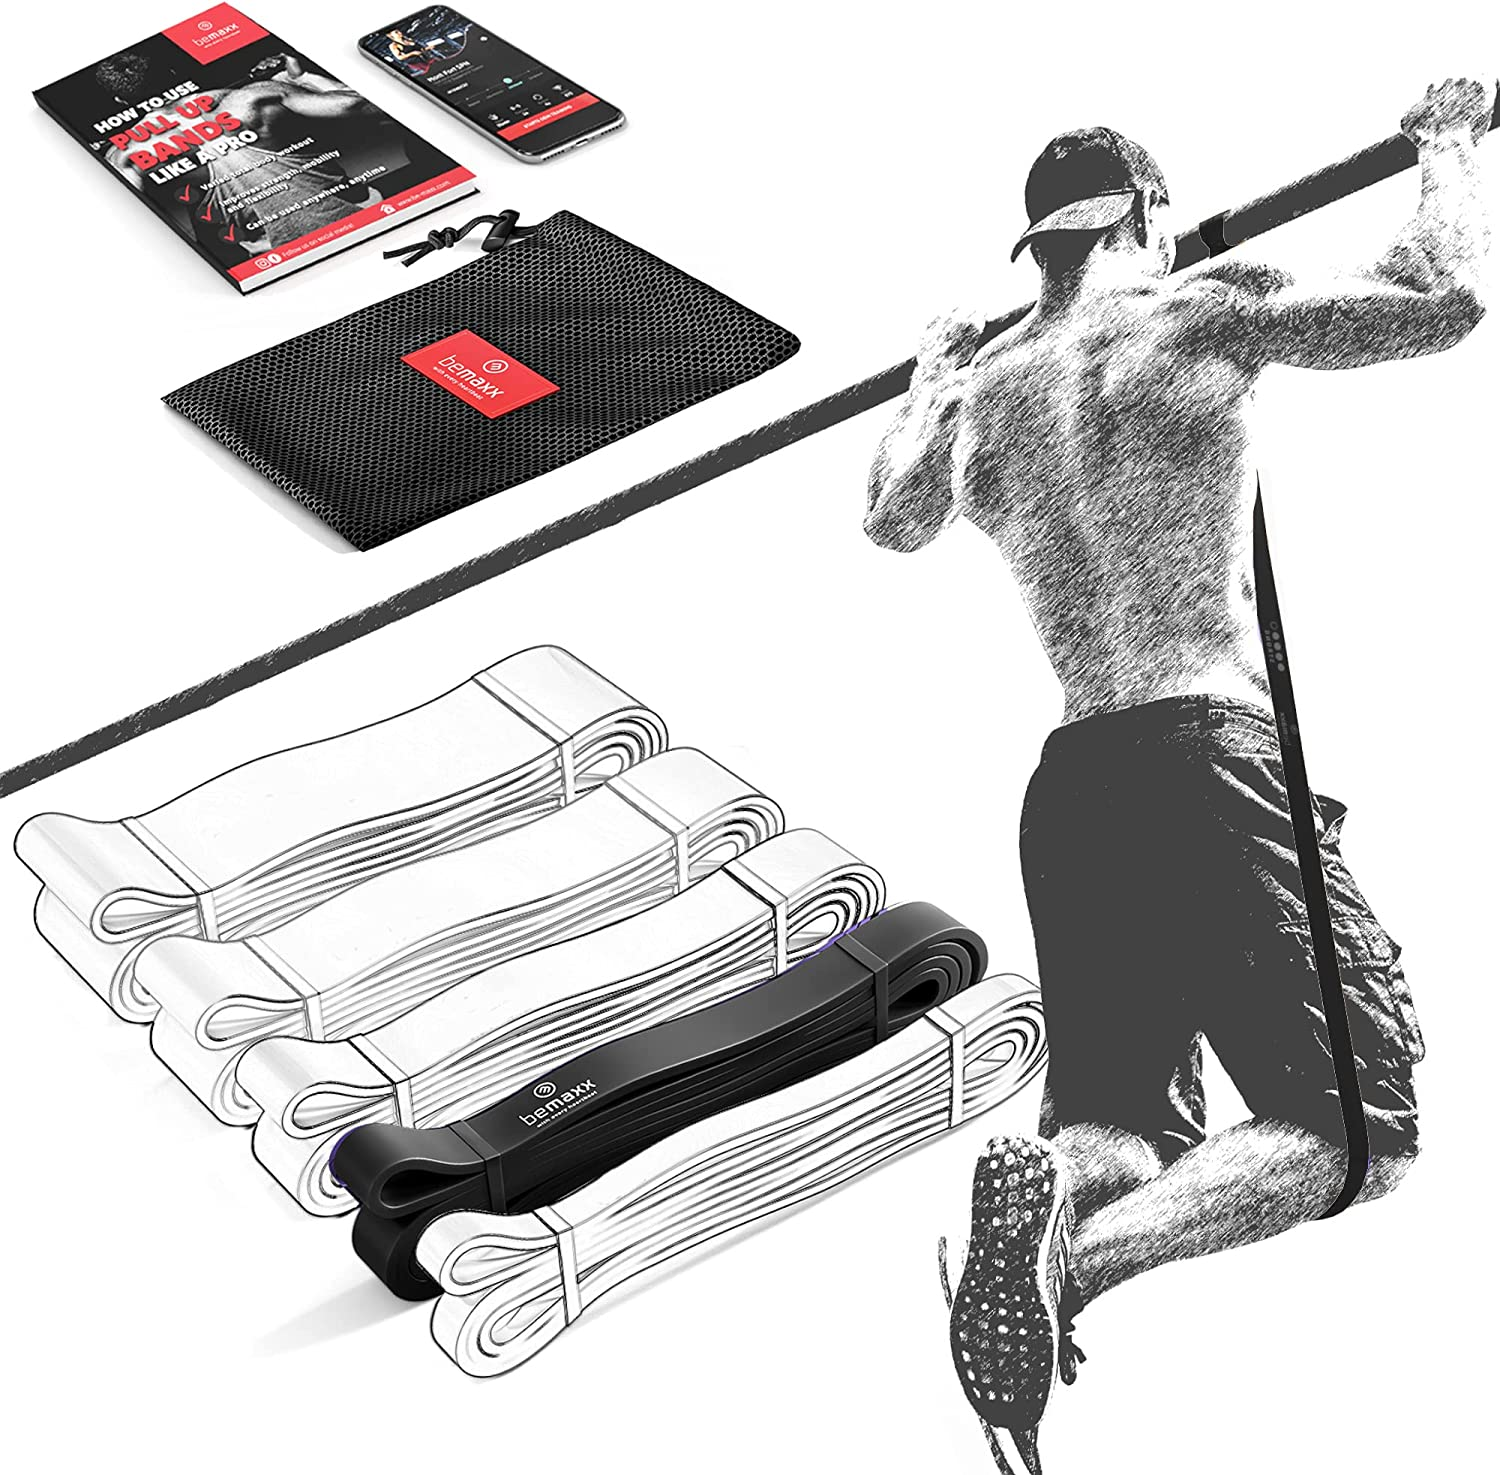 Resistance Band Pull Up Assist Exercise Ranking TOP3 + Ranking TOP6 Guide: Strength Traini